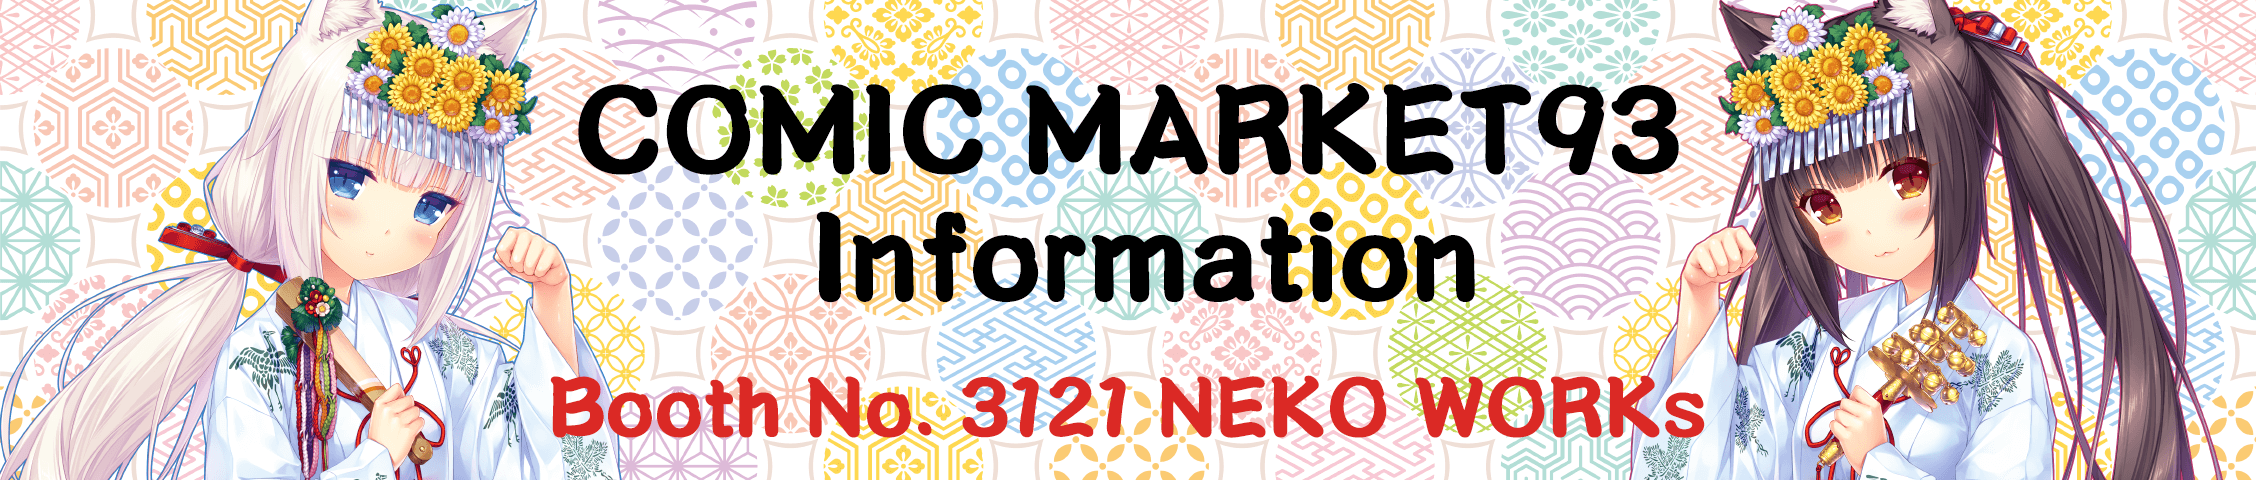 COMIC MARKET 93 INFORMATION